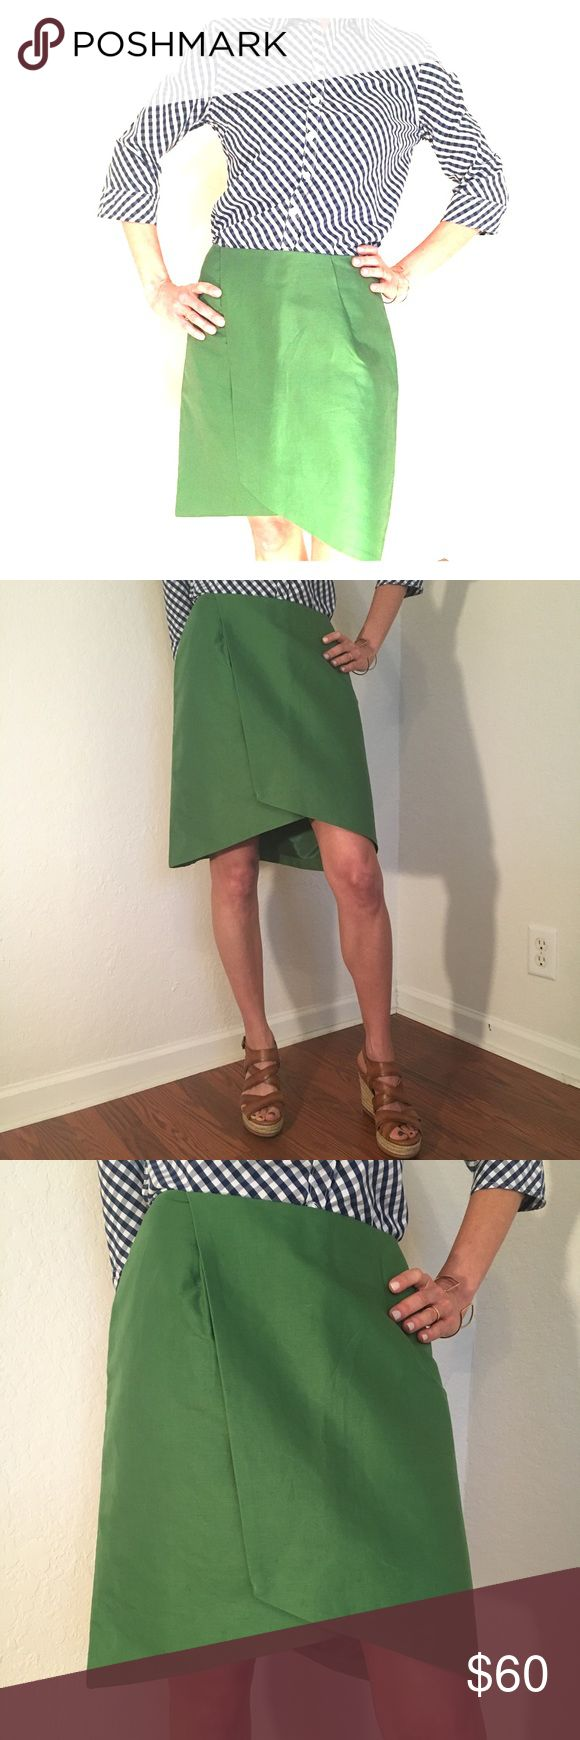 Kate Spade Saturday Green Overlap Mini Skirt Kate Spade Saturday Green Overlap Mini Skirt. 62% Cotton 38% Linen.  100% polyester lining. Super cute design.  Beautiful fabric and color.  🚭Smoke-free home.🚭 kate spade Skirts Mini